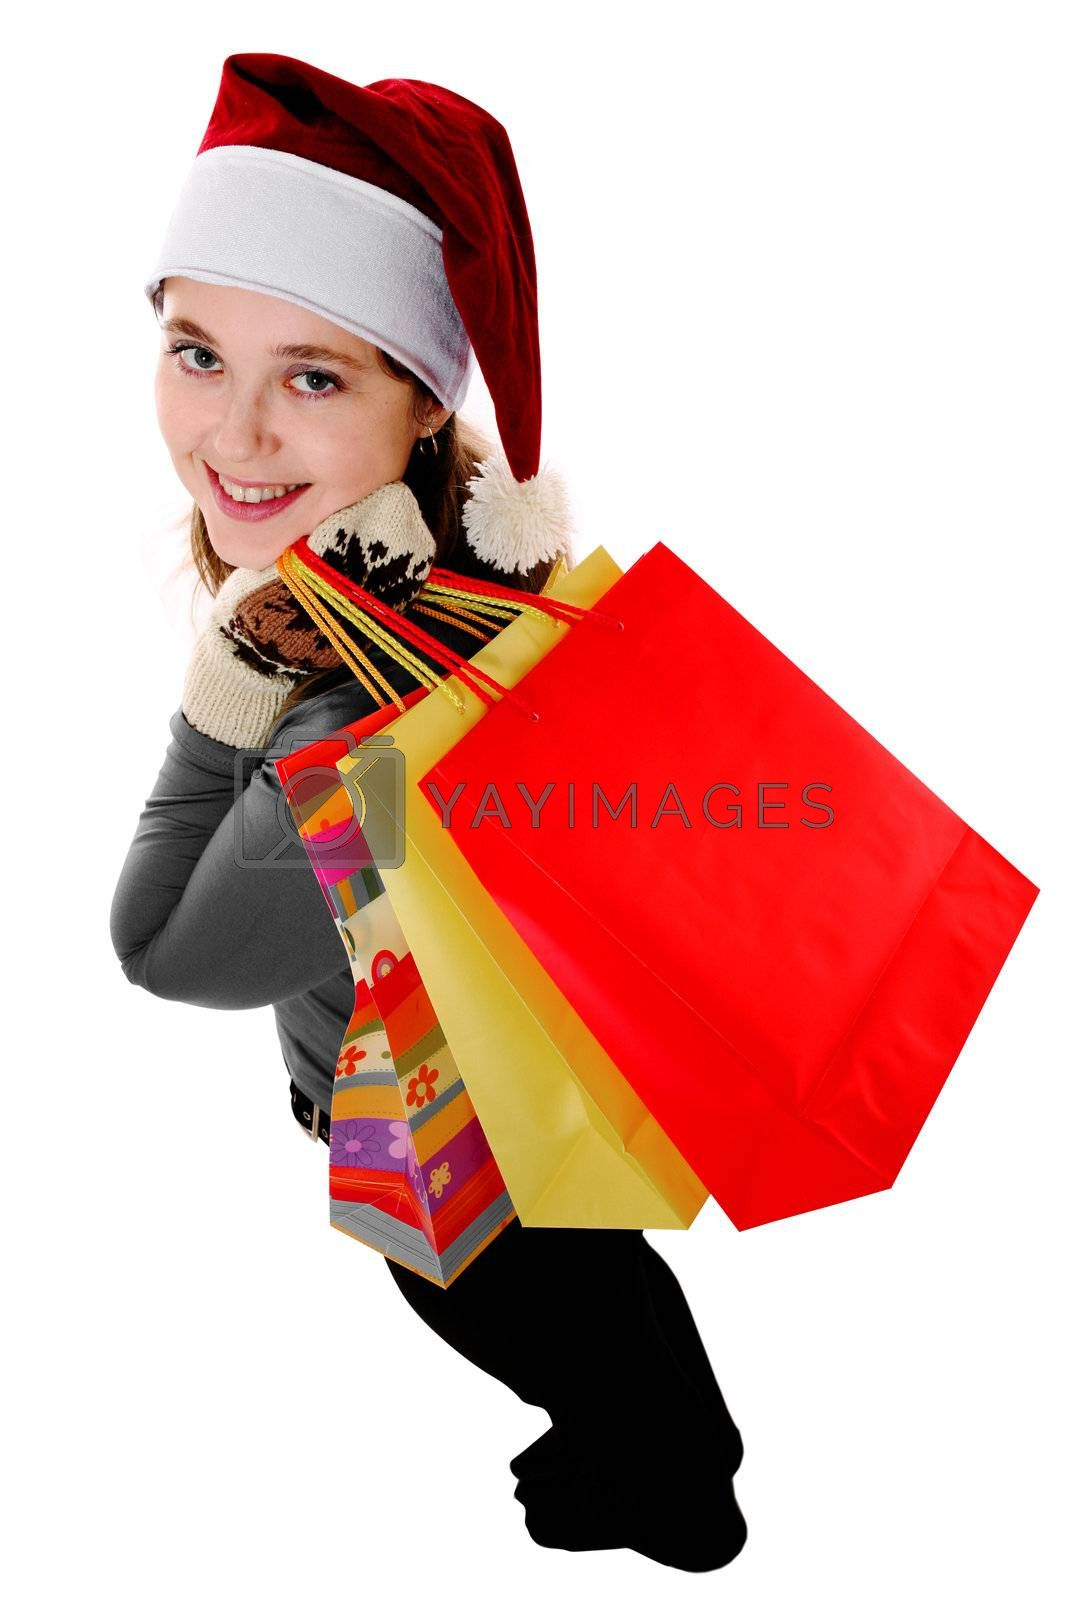 An image of a girl in red christmas cap with bags